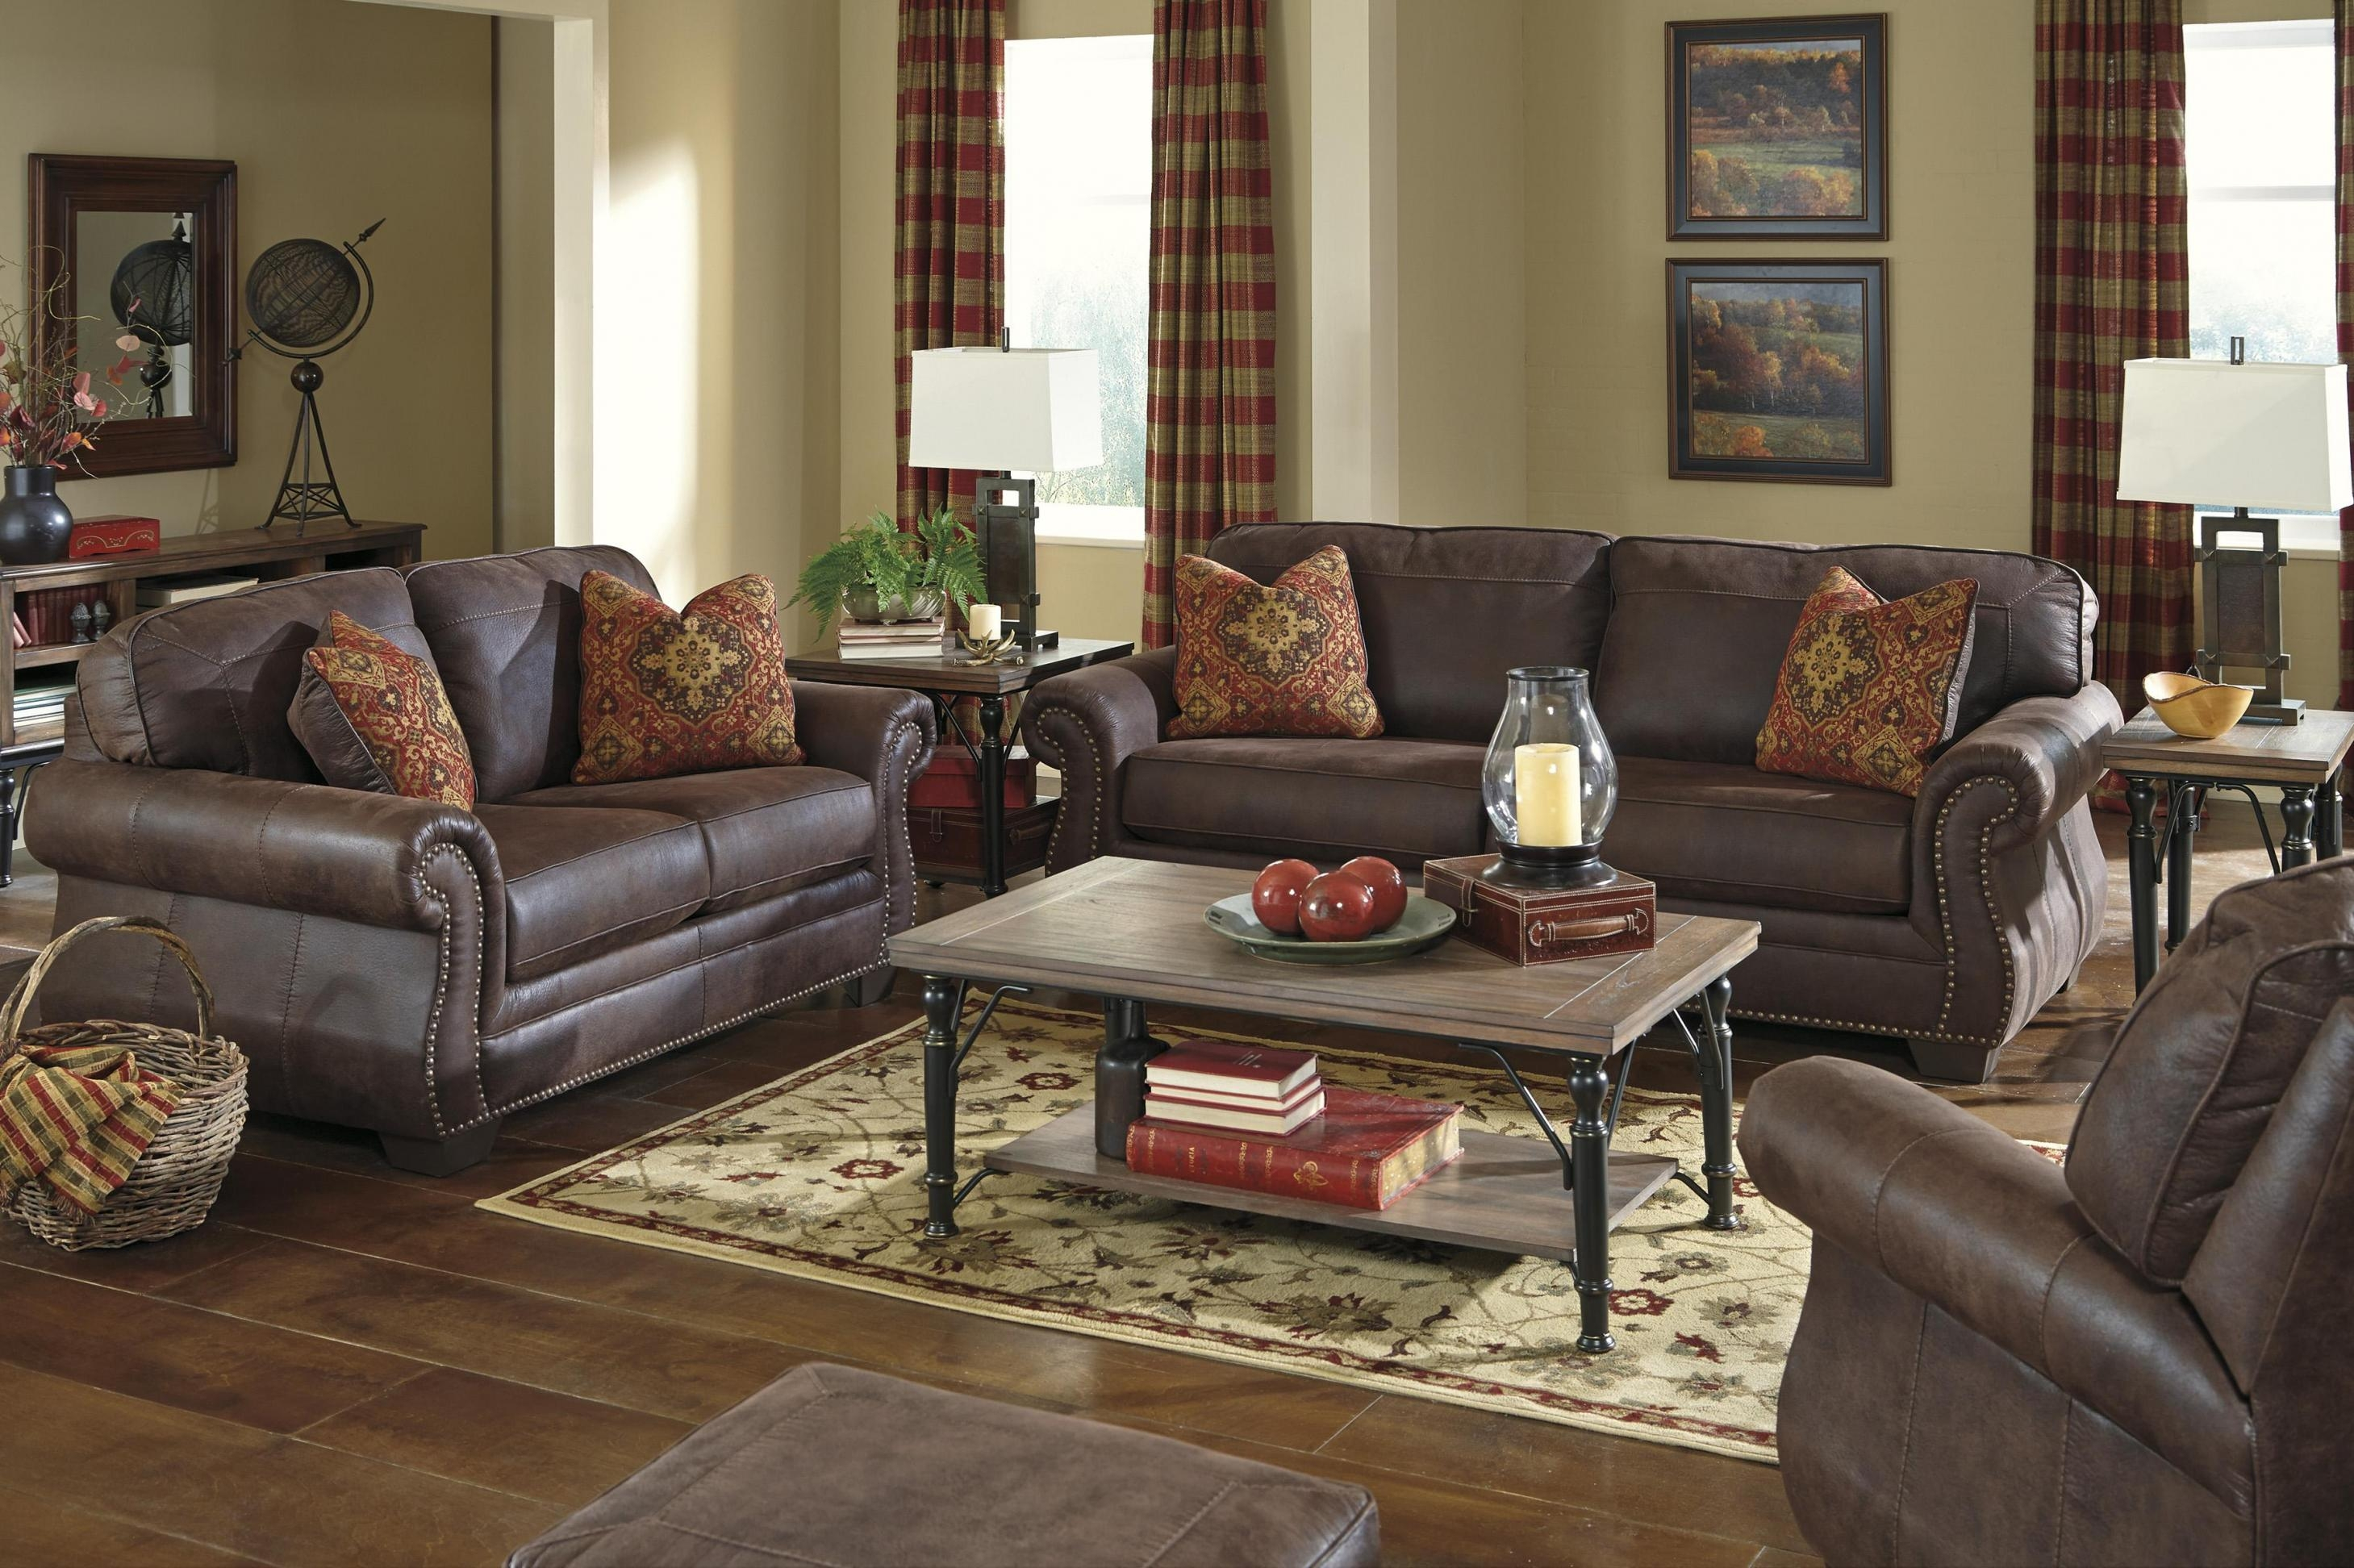 Fabulous Furniture: Ashleyfurniture Com Sofas | Ashleys Furniture Locations with Fresh Ashley Furniture Locations